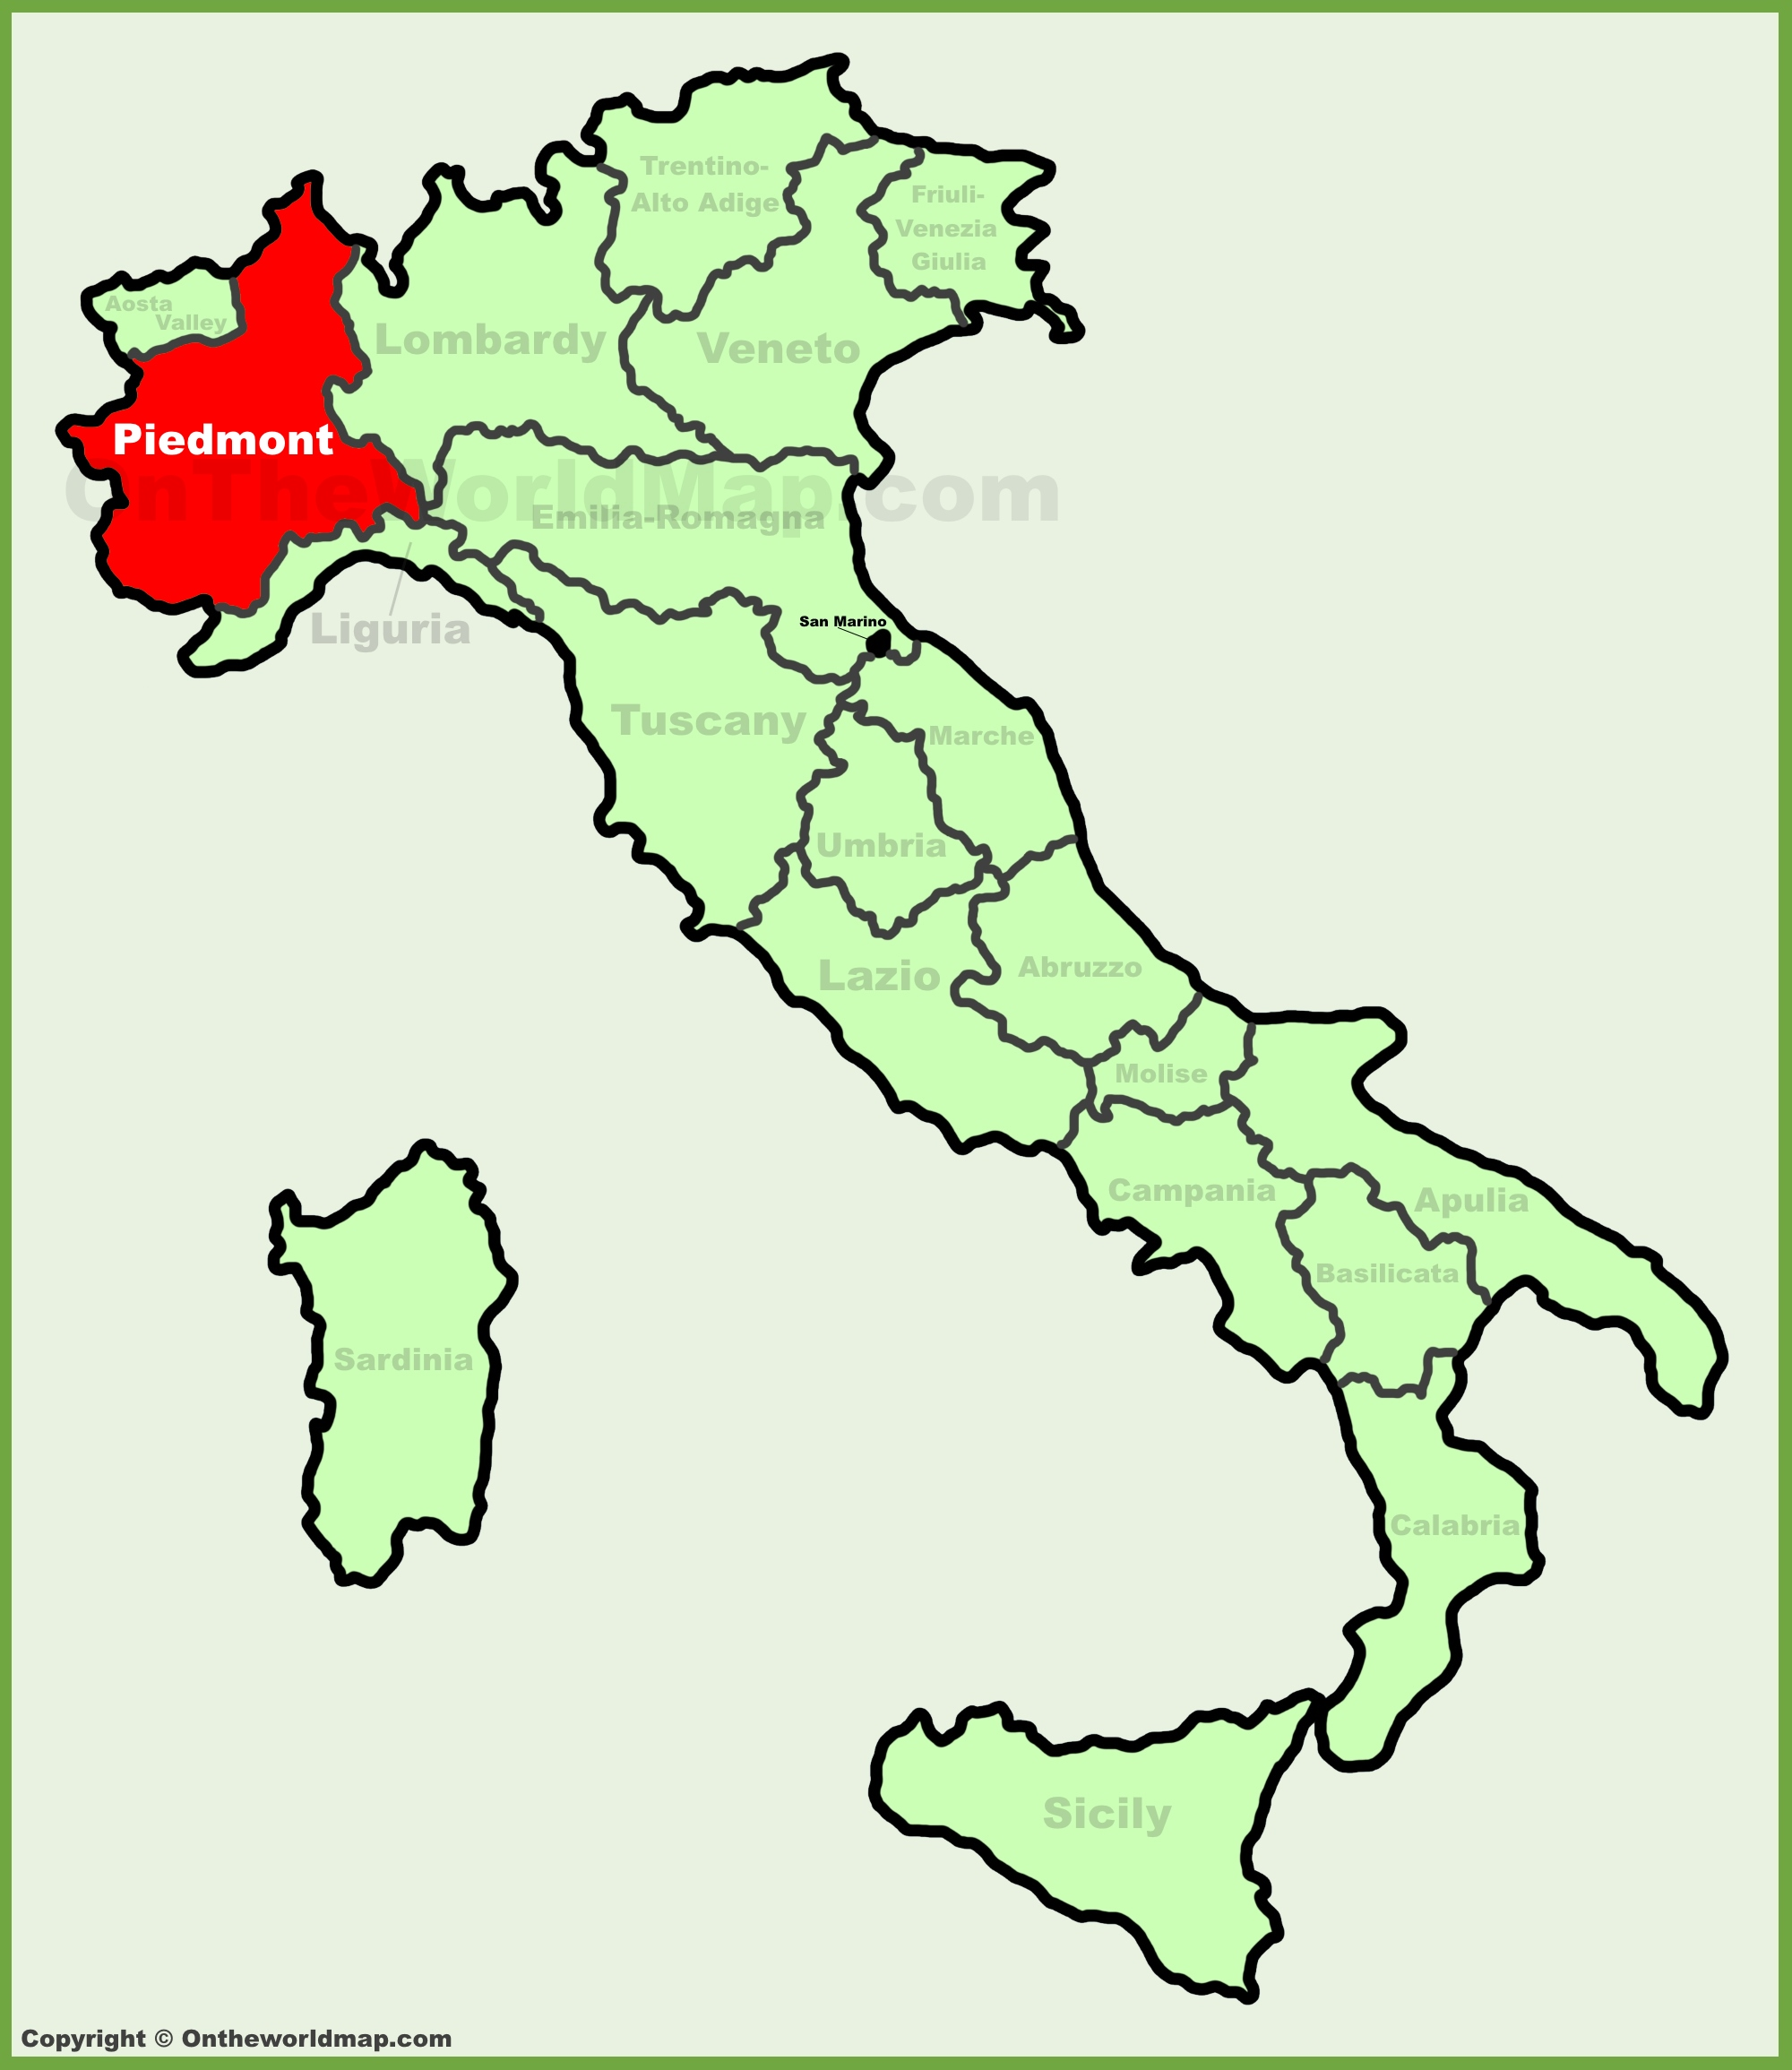 piedmont location on the italy map